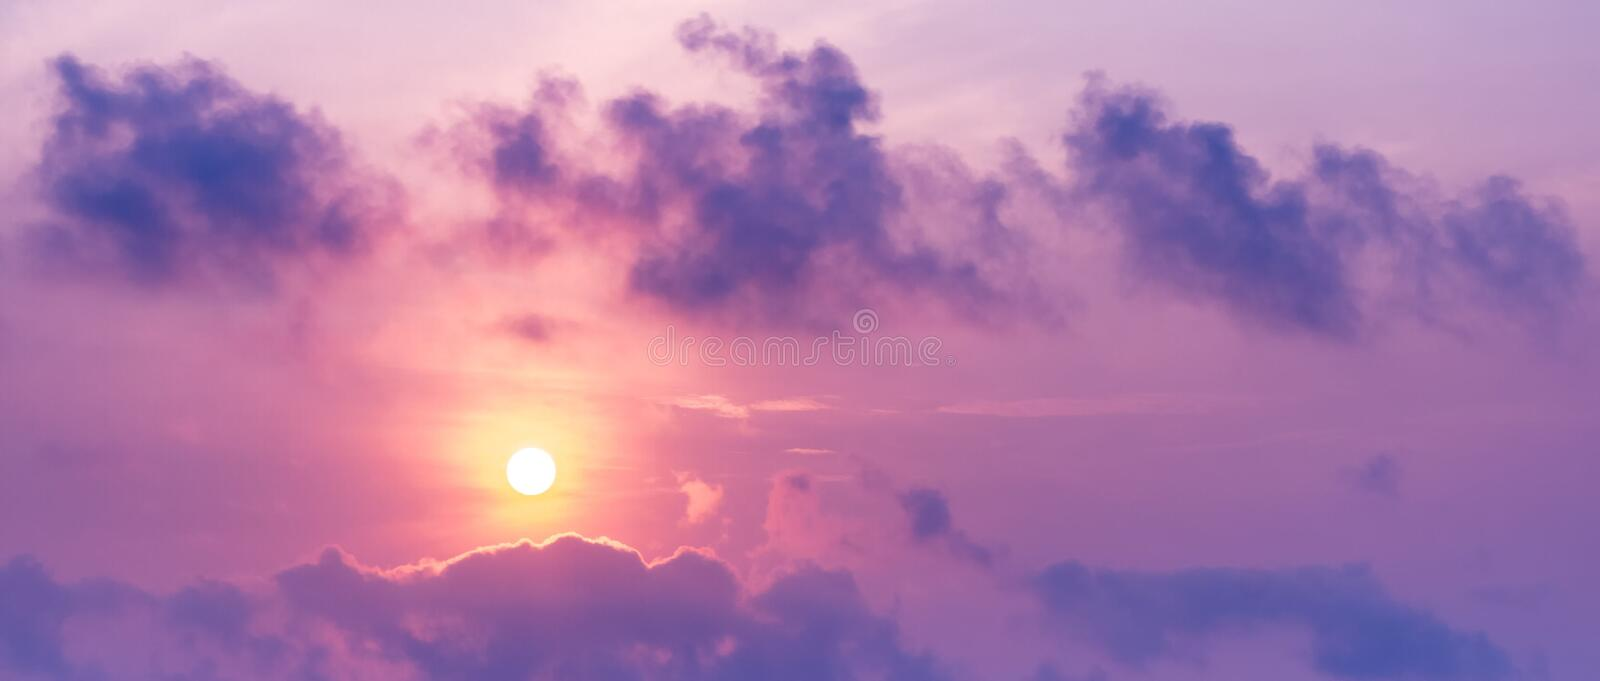 Panorama picture of the sun on the sky and cloud at twilight time purple tone. Sunrise or sunset scene royalty free stock photography